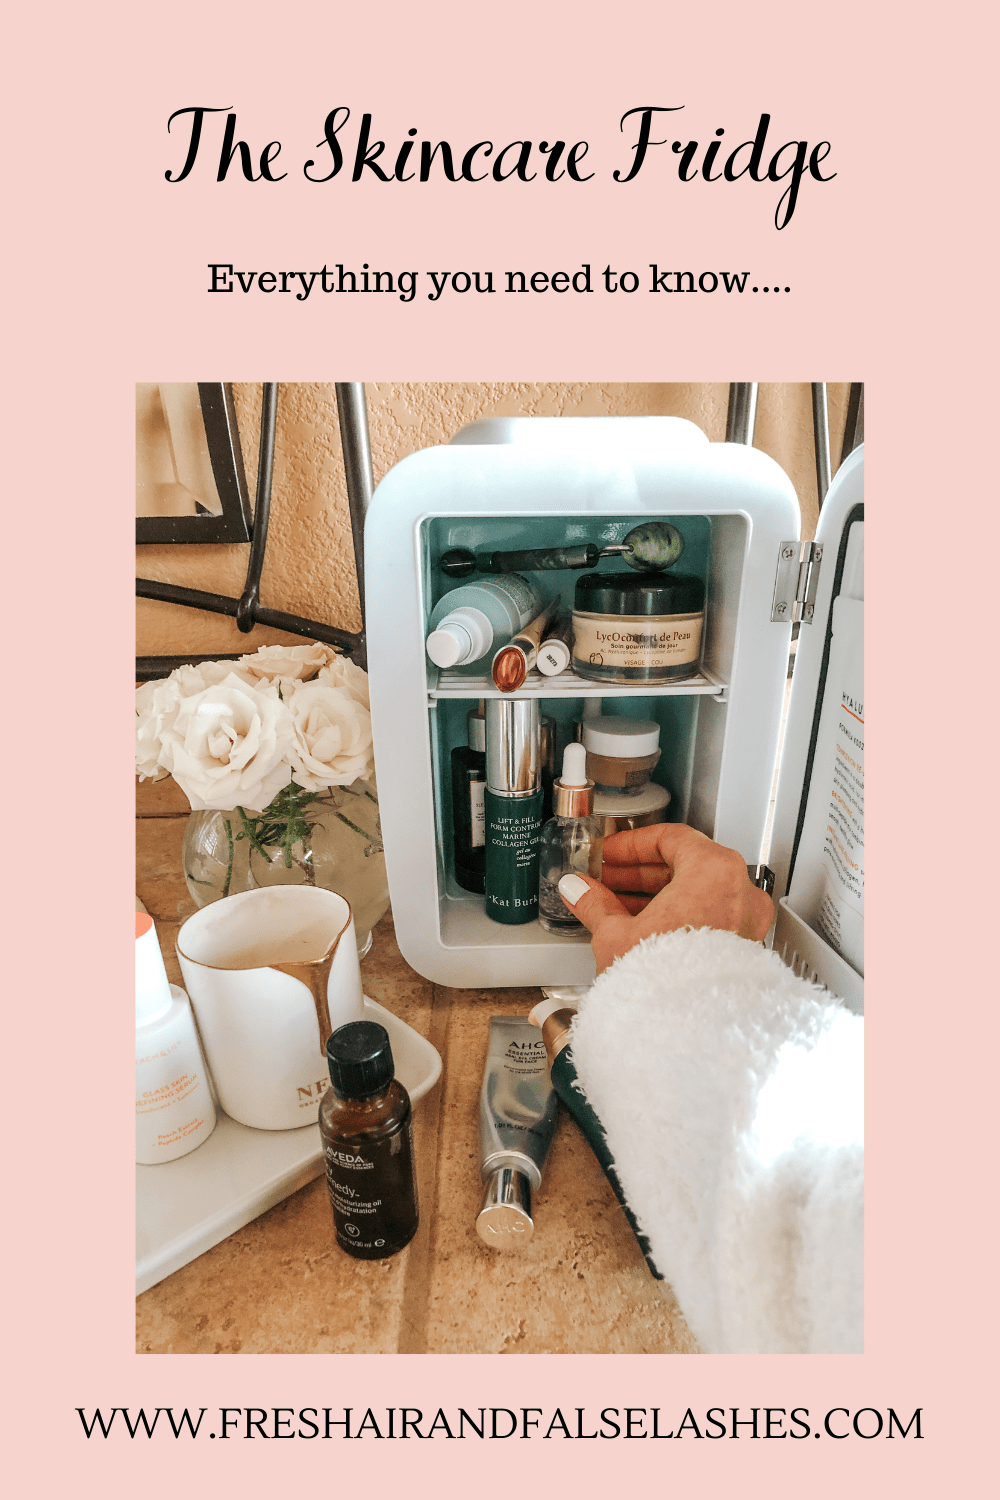 The skincare fridge. Everything you need to know.